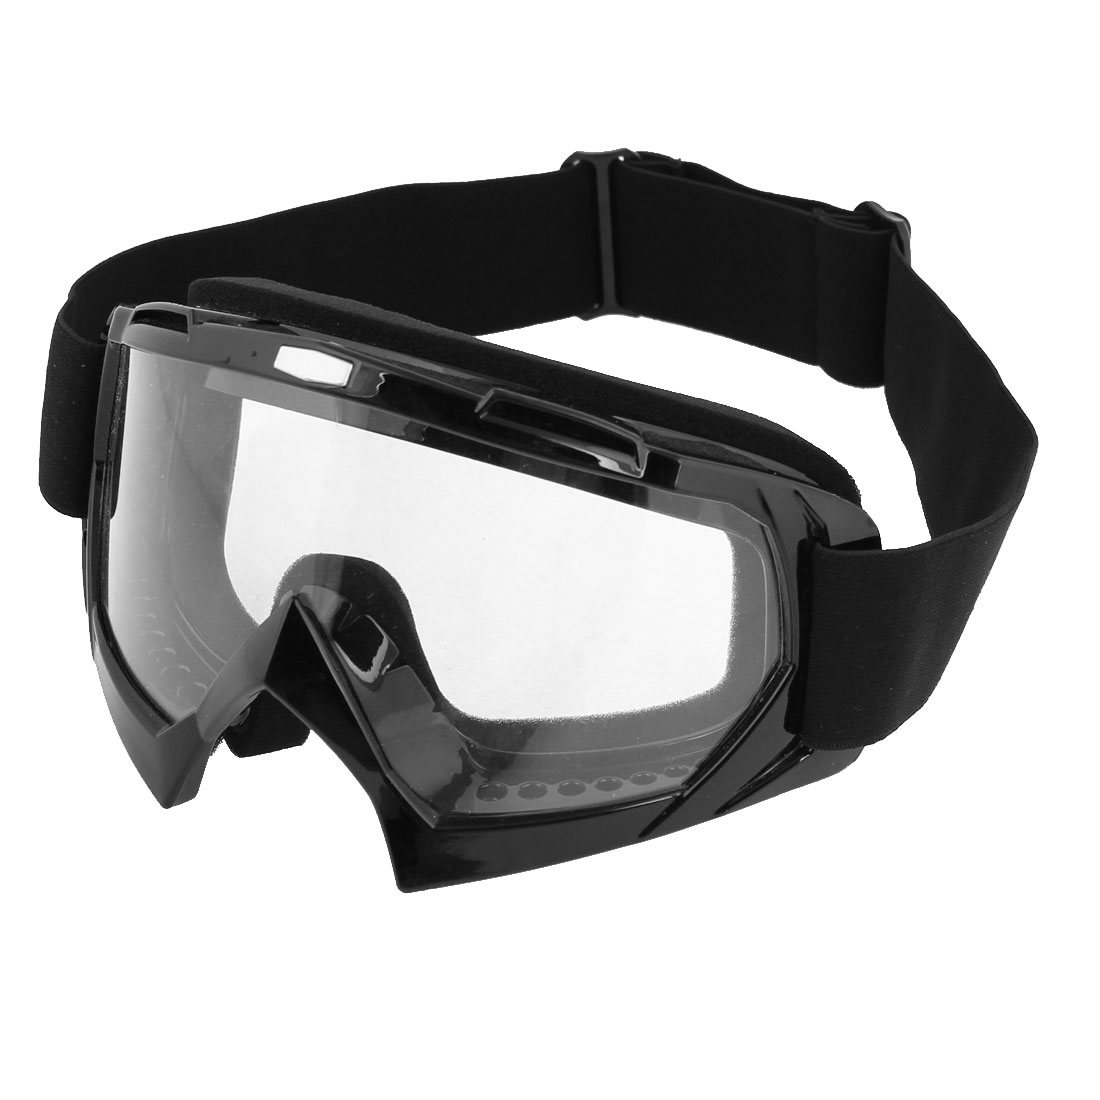 Sponge Interior Black Frame Clear Lens Motorcycle Protective Goggles Glasses